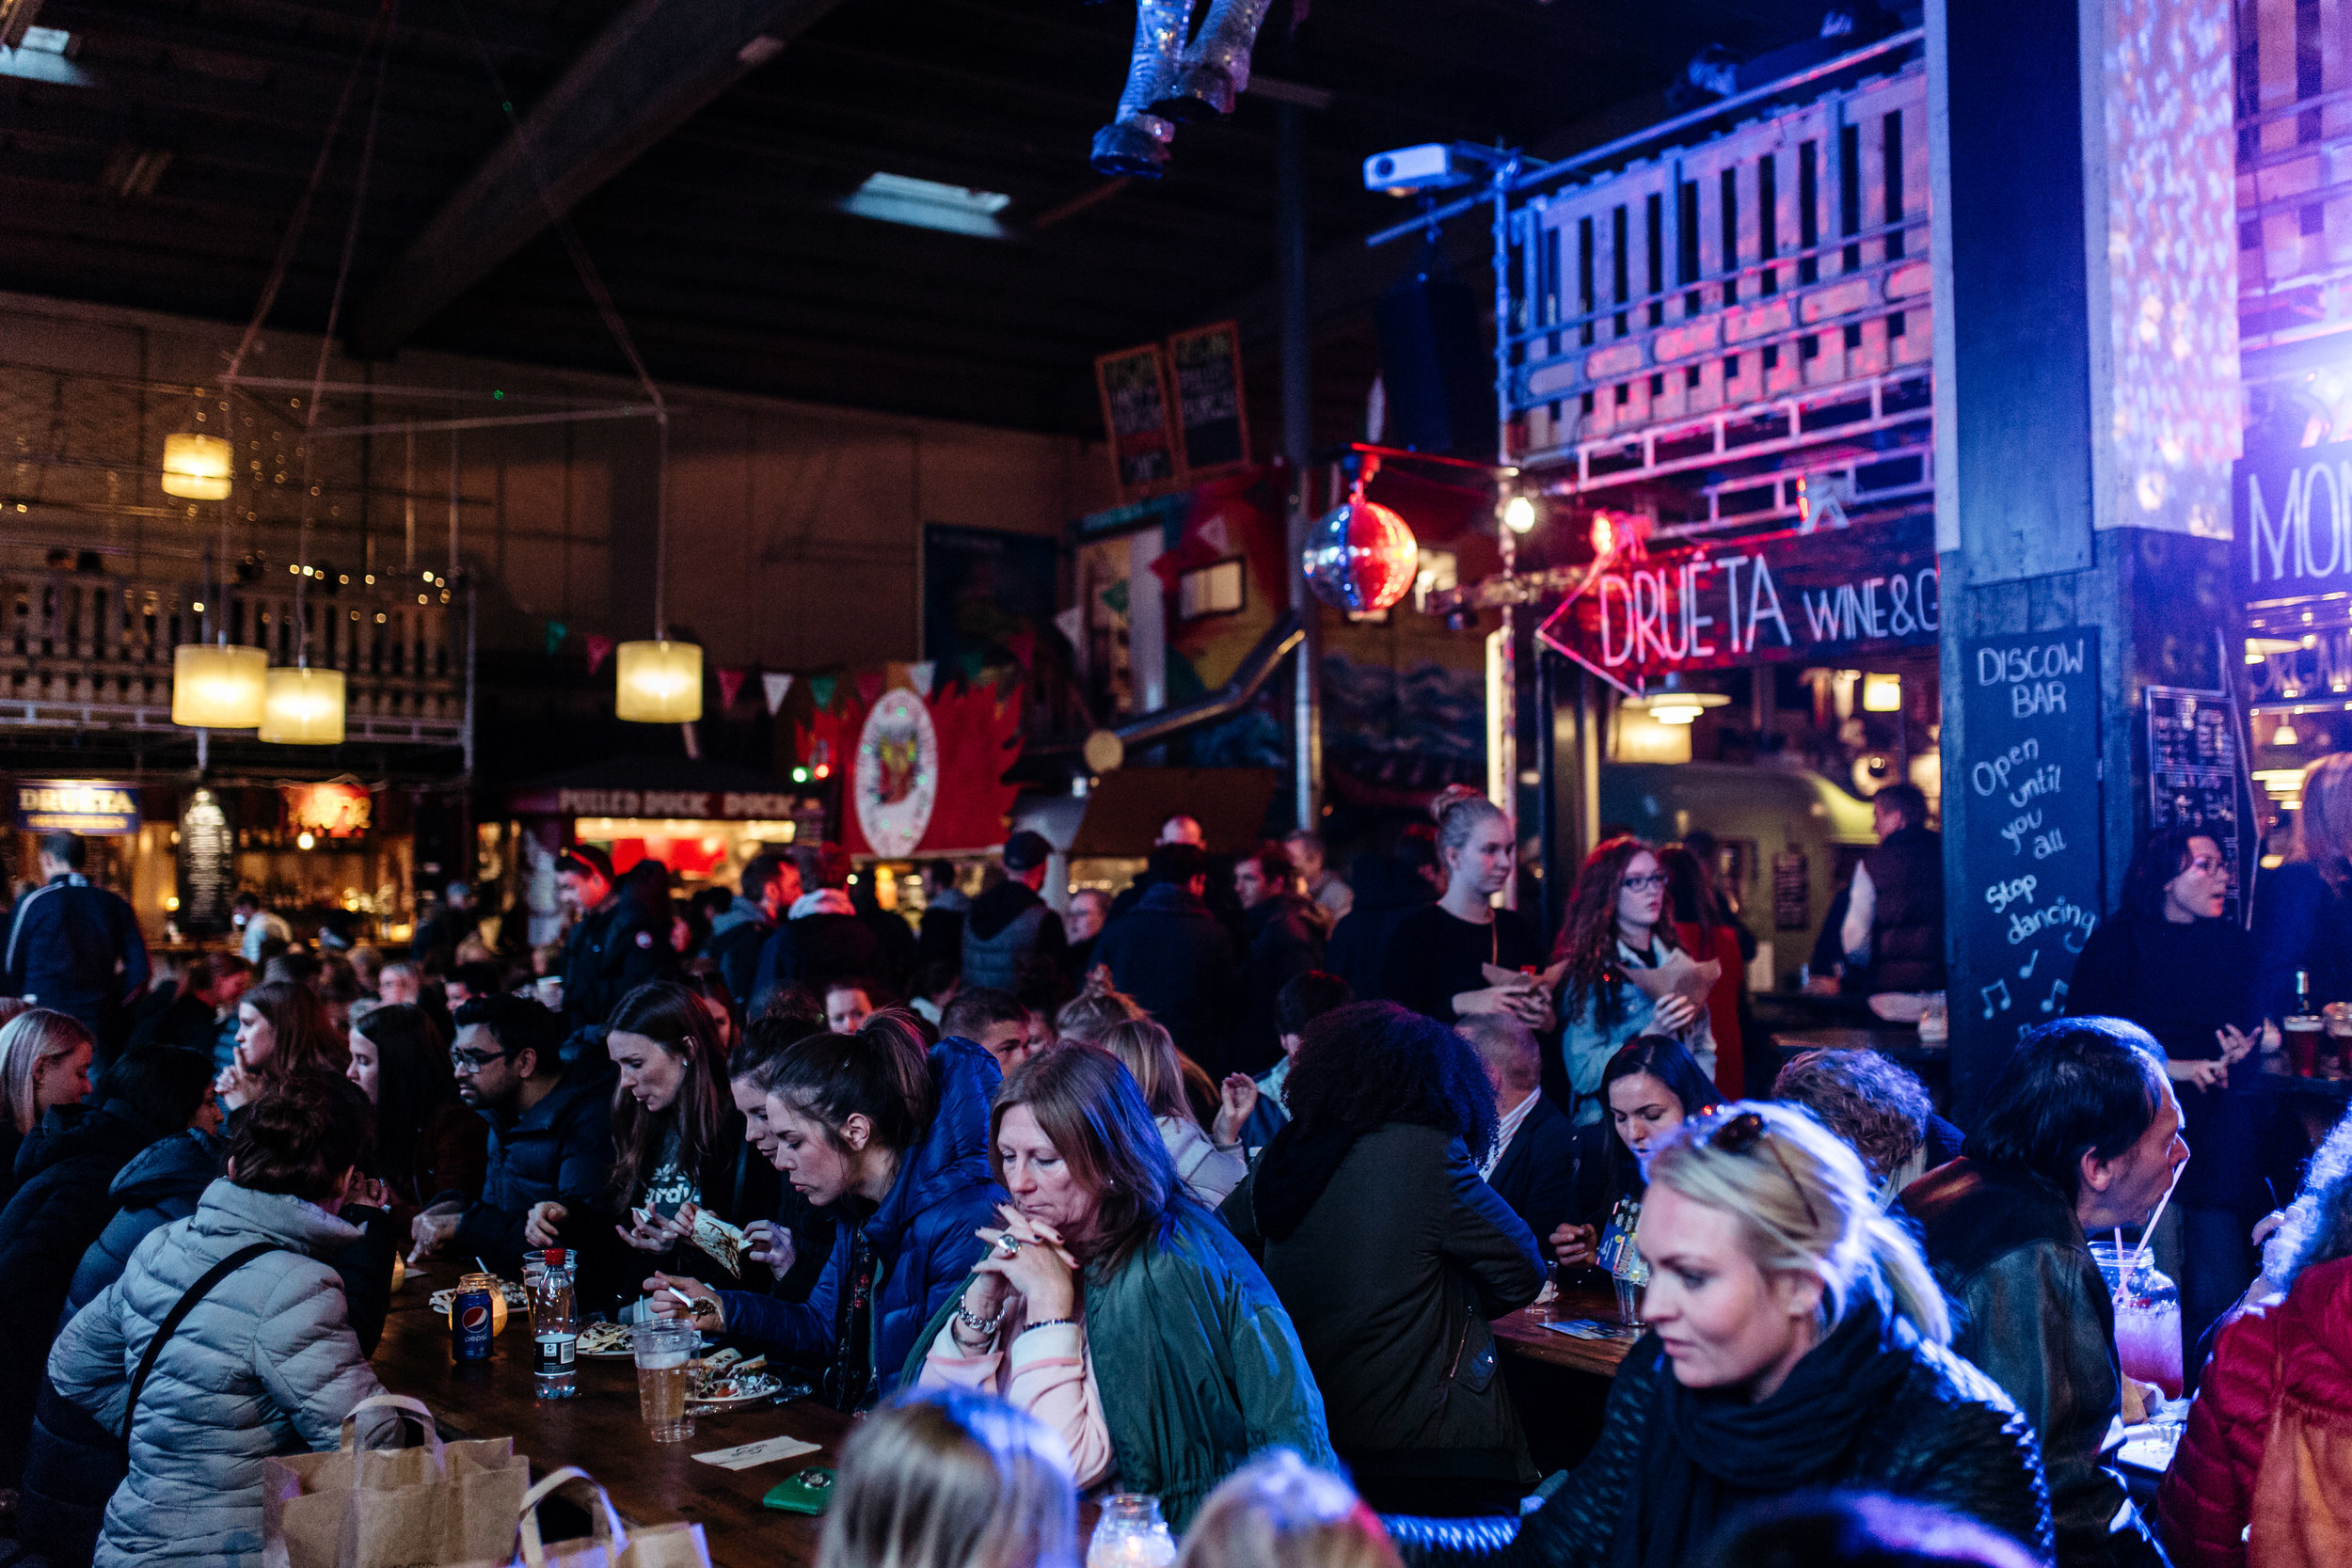 A bit grungy, yet an exceptionally lively atmosphere on Papirøen as crowds of people find space to eat!